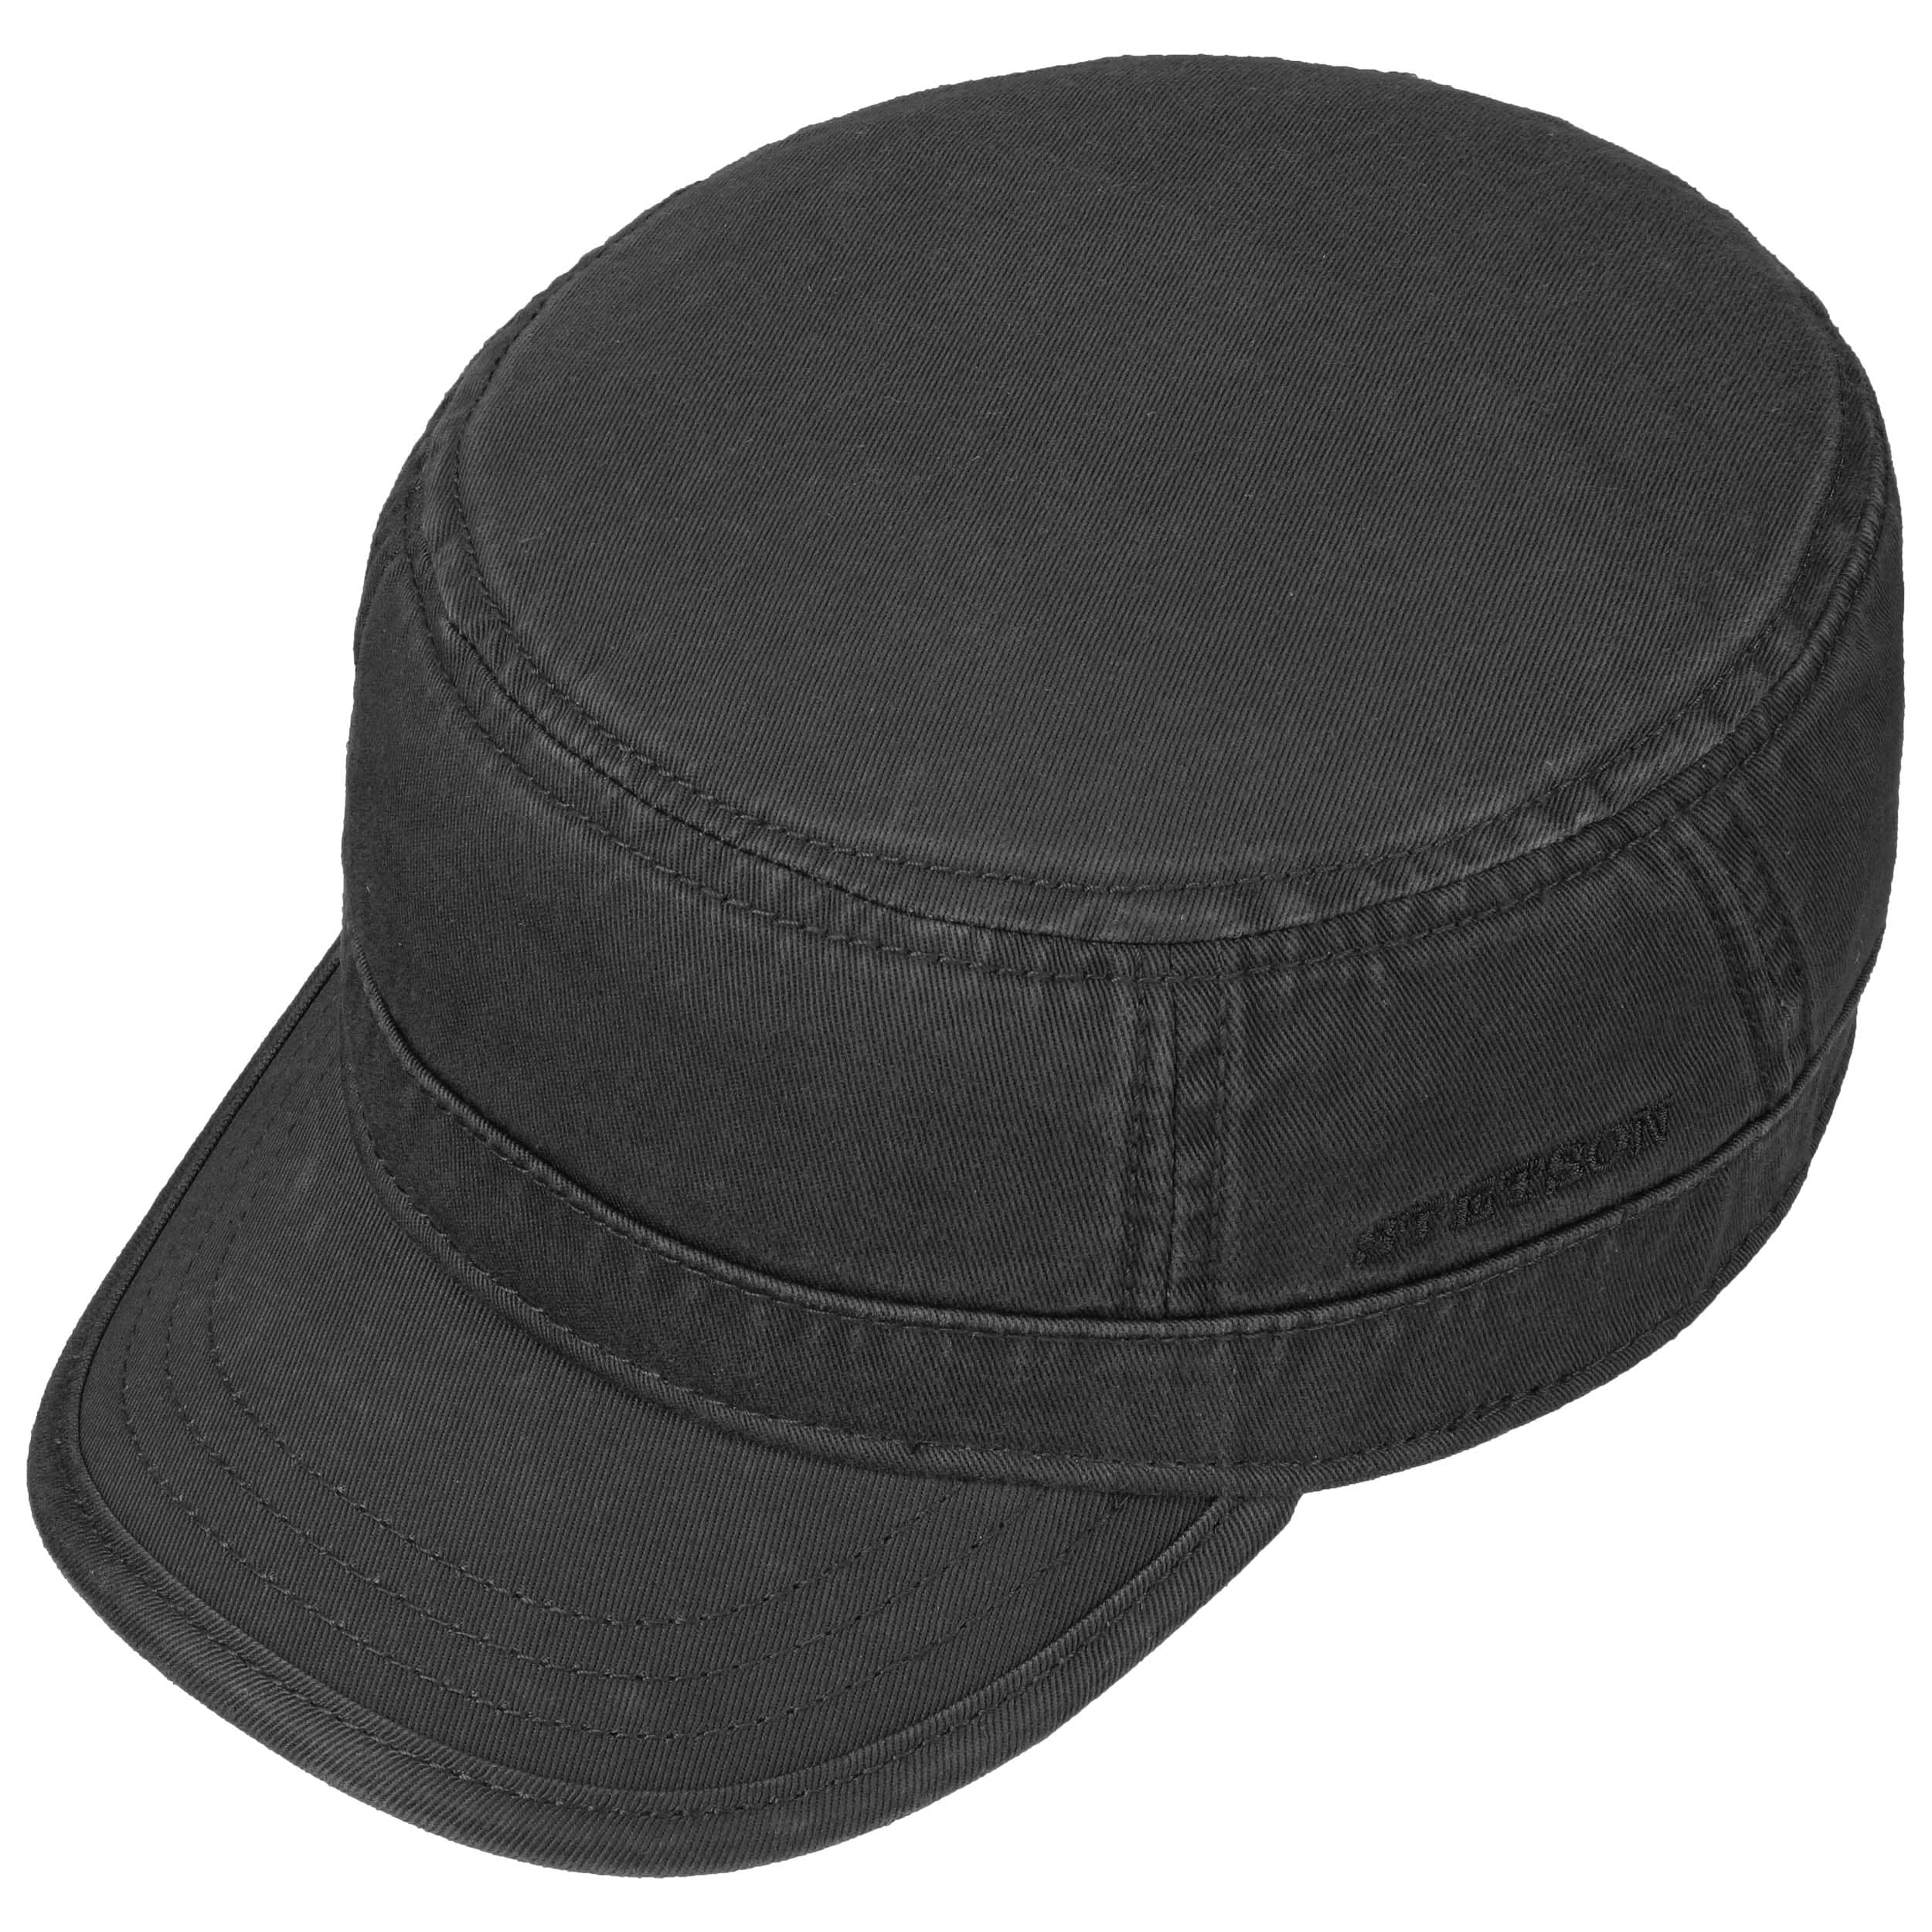 ... Gosper Army Cap by Stetson - black 1 ... e947c24fe0d